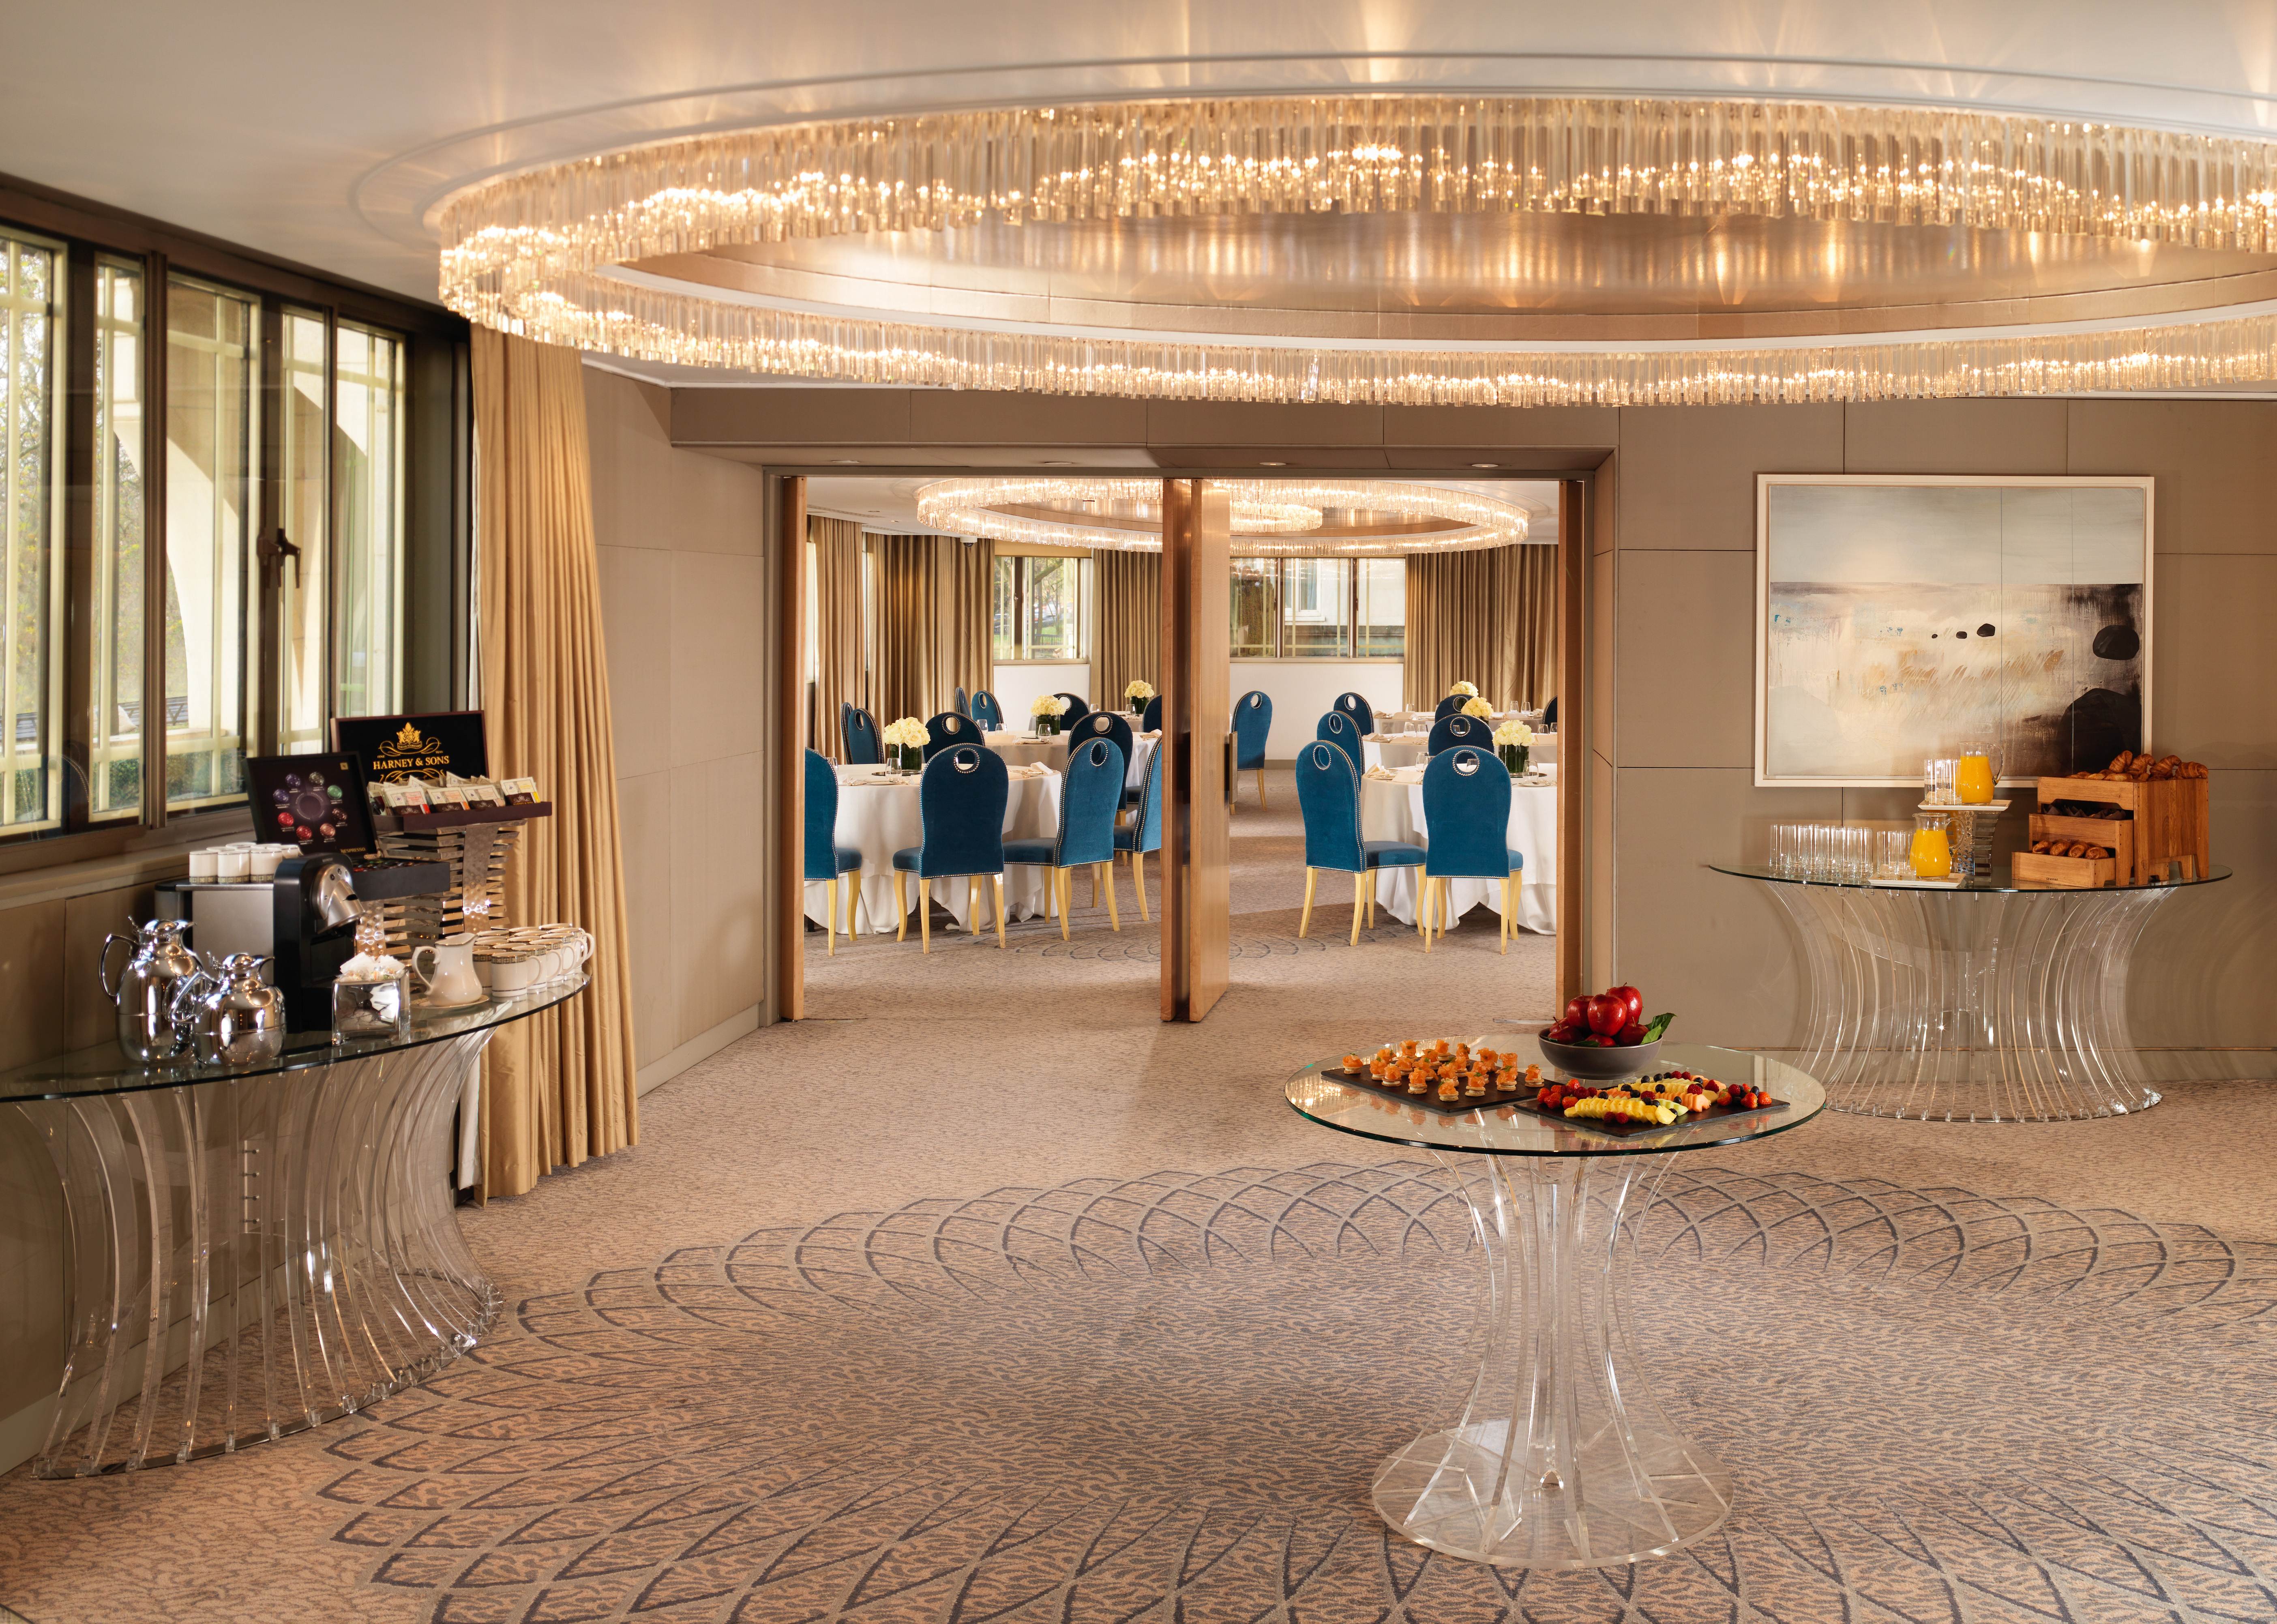 , The Dorchester, AMERICAN ACADEMY OF HOSPITALITY SCIENCES